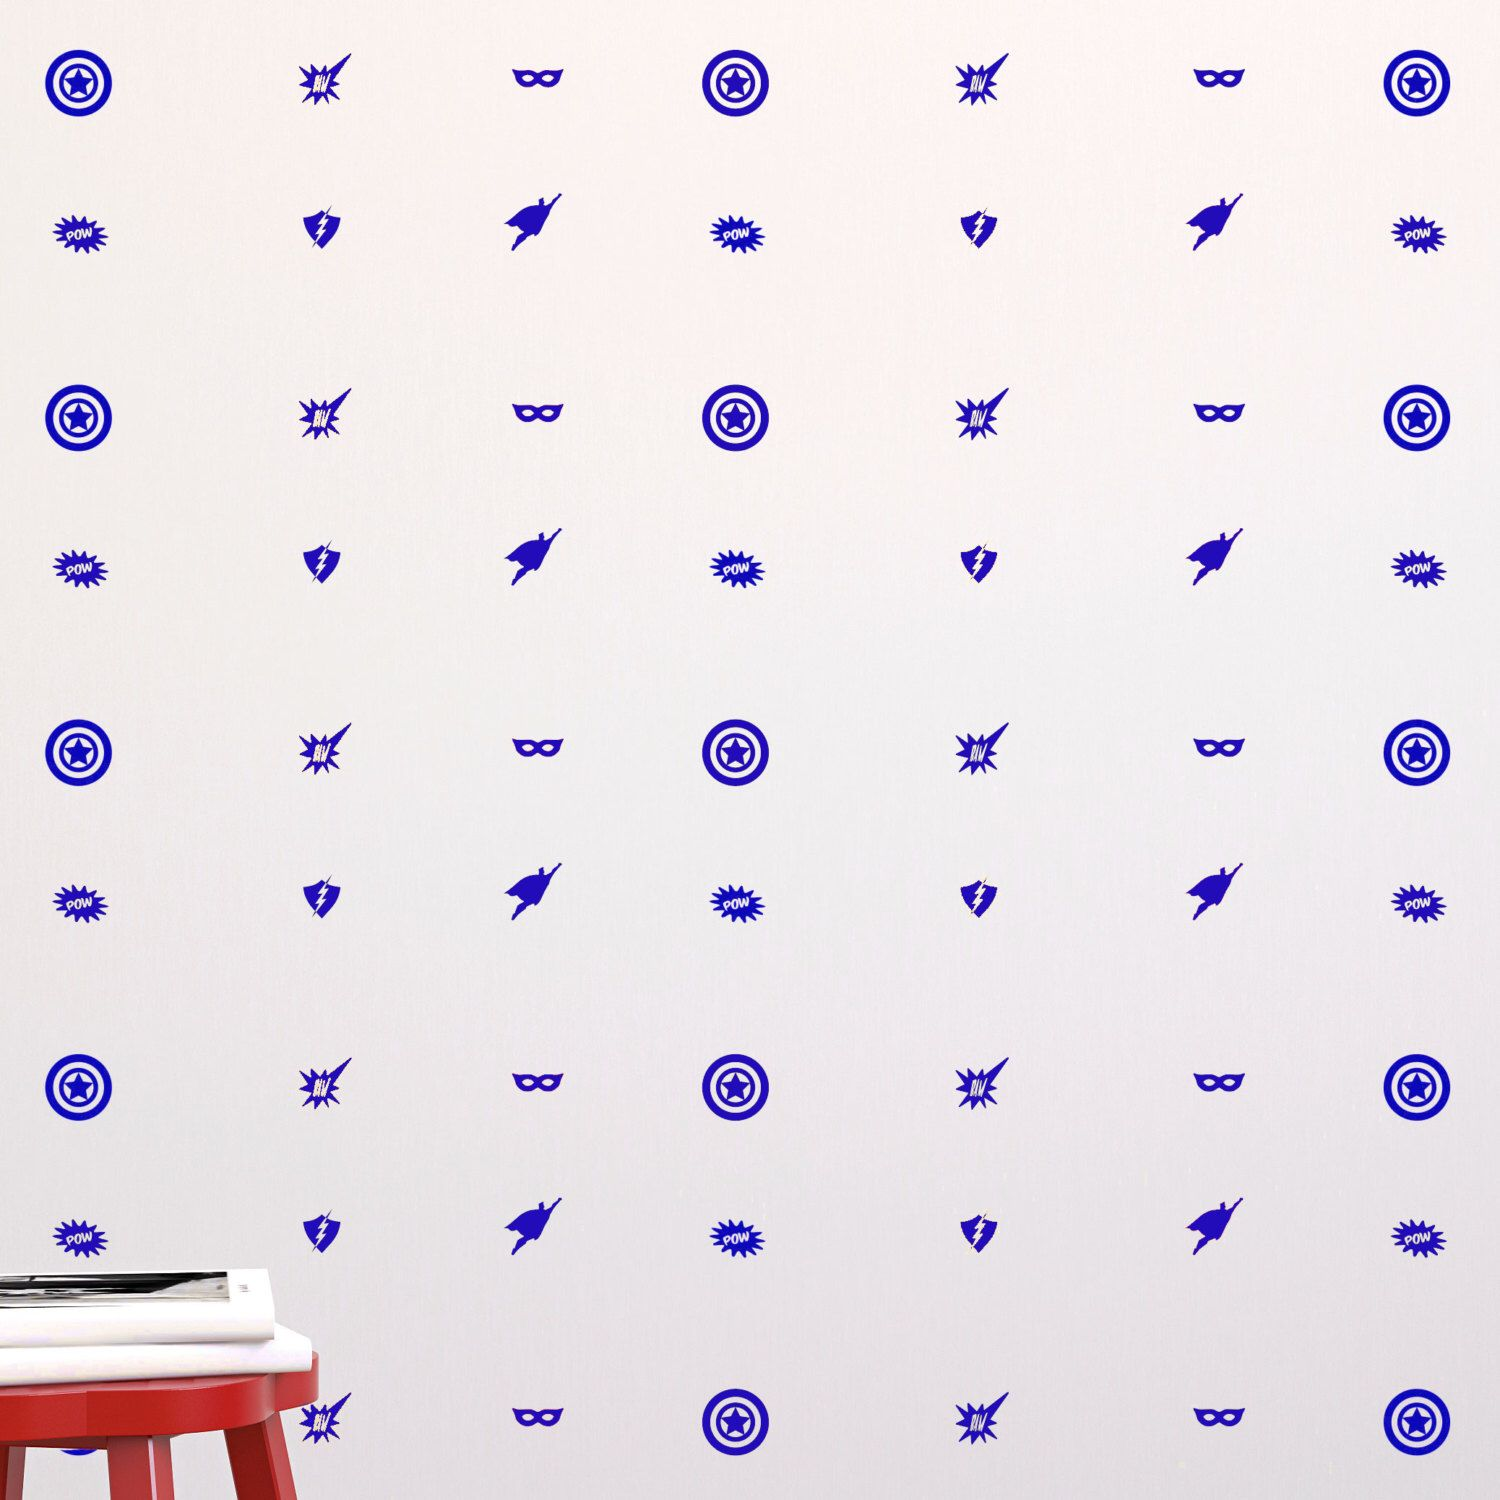 Superhero Icons Wall Pattern Repeatable Decal - Wall Decal Custom Vinyl Art Stickers for Interior Designers, Homes, Schools by danadecals on Etsy https://www.etsy.com/listing/210595775/superhero-icons-wall-pattern-repeatable